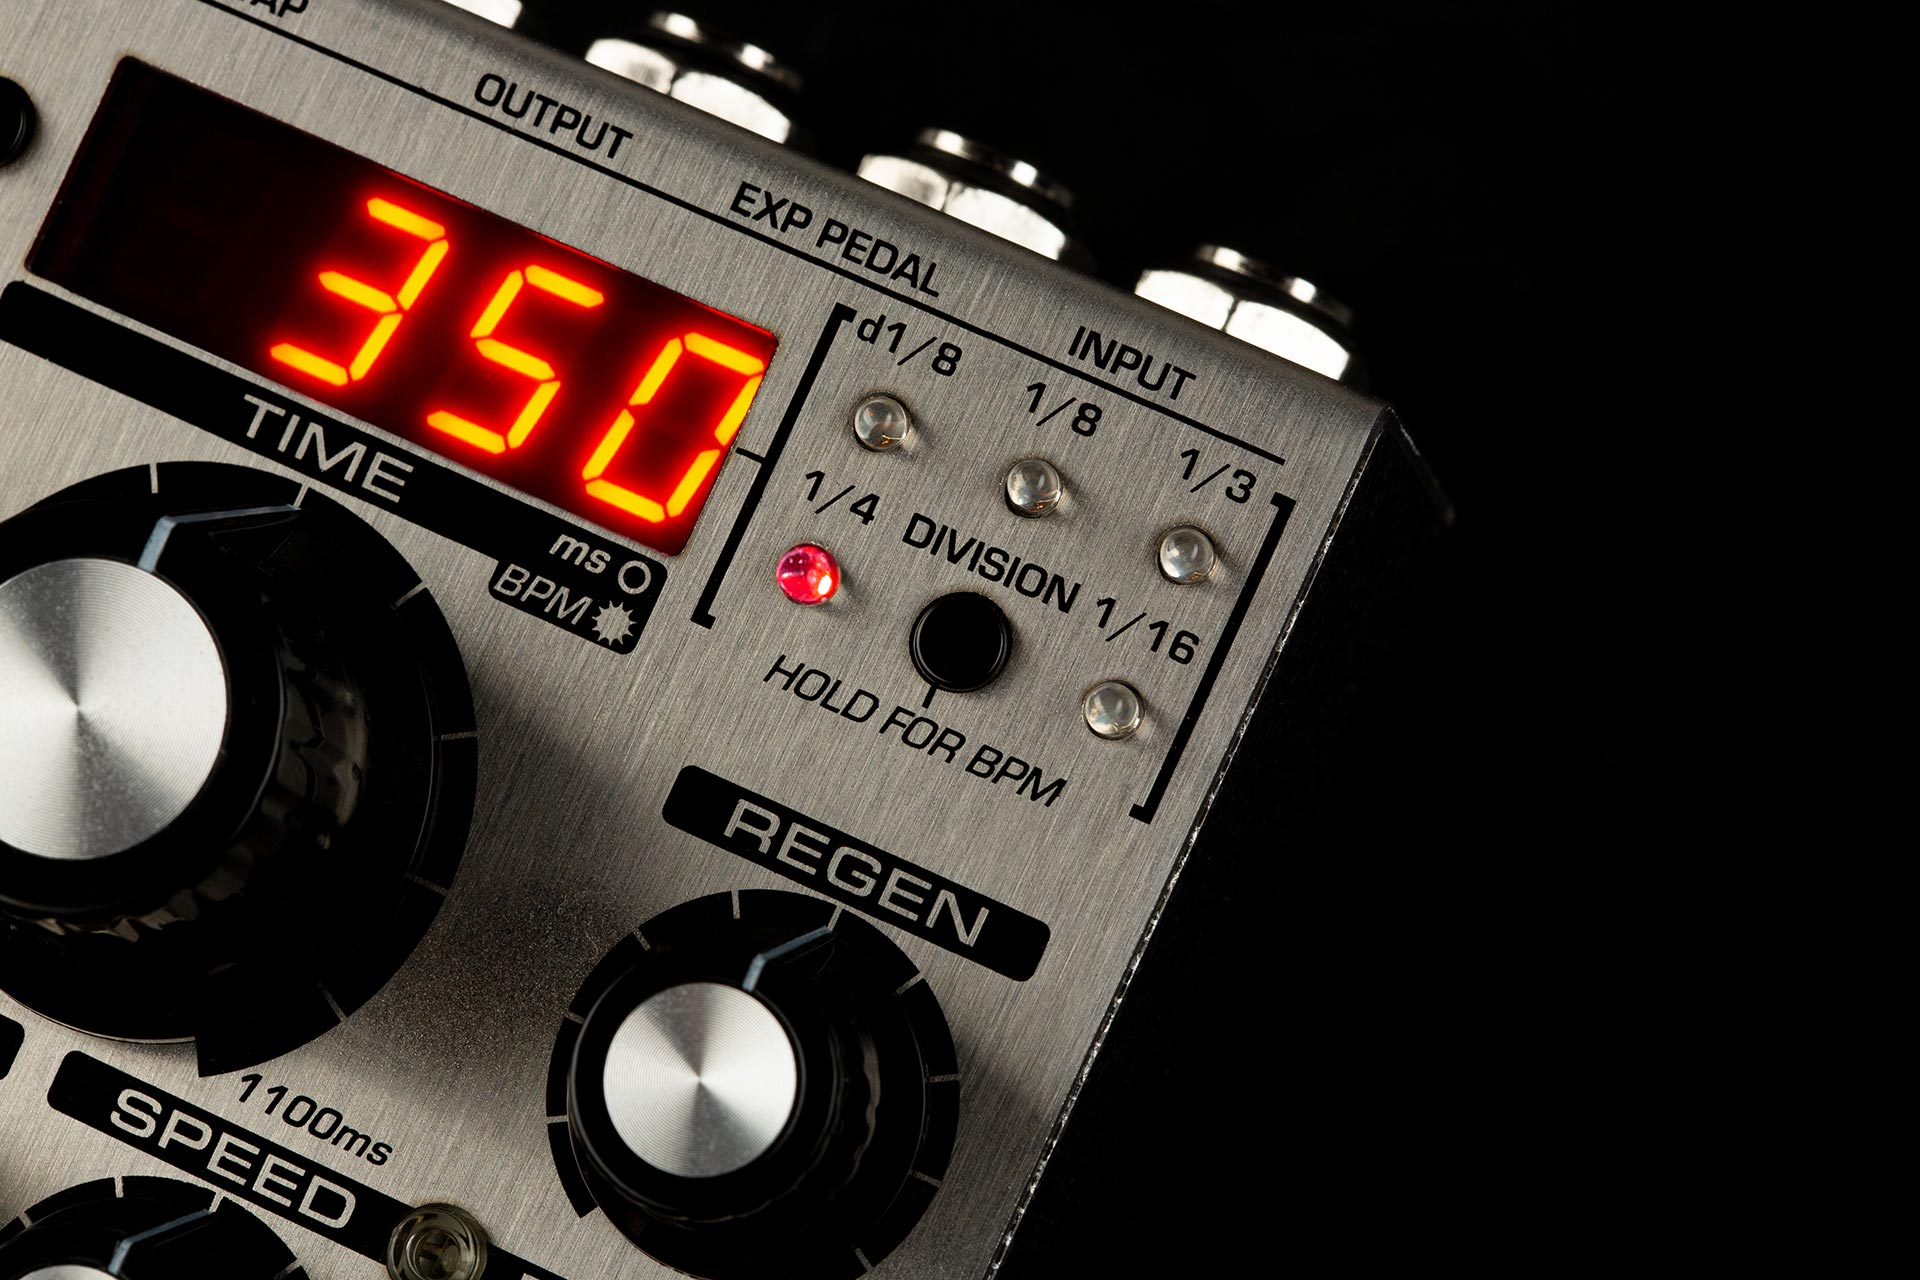 Discovery Delay features modern controls.